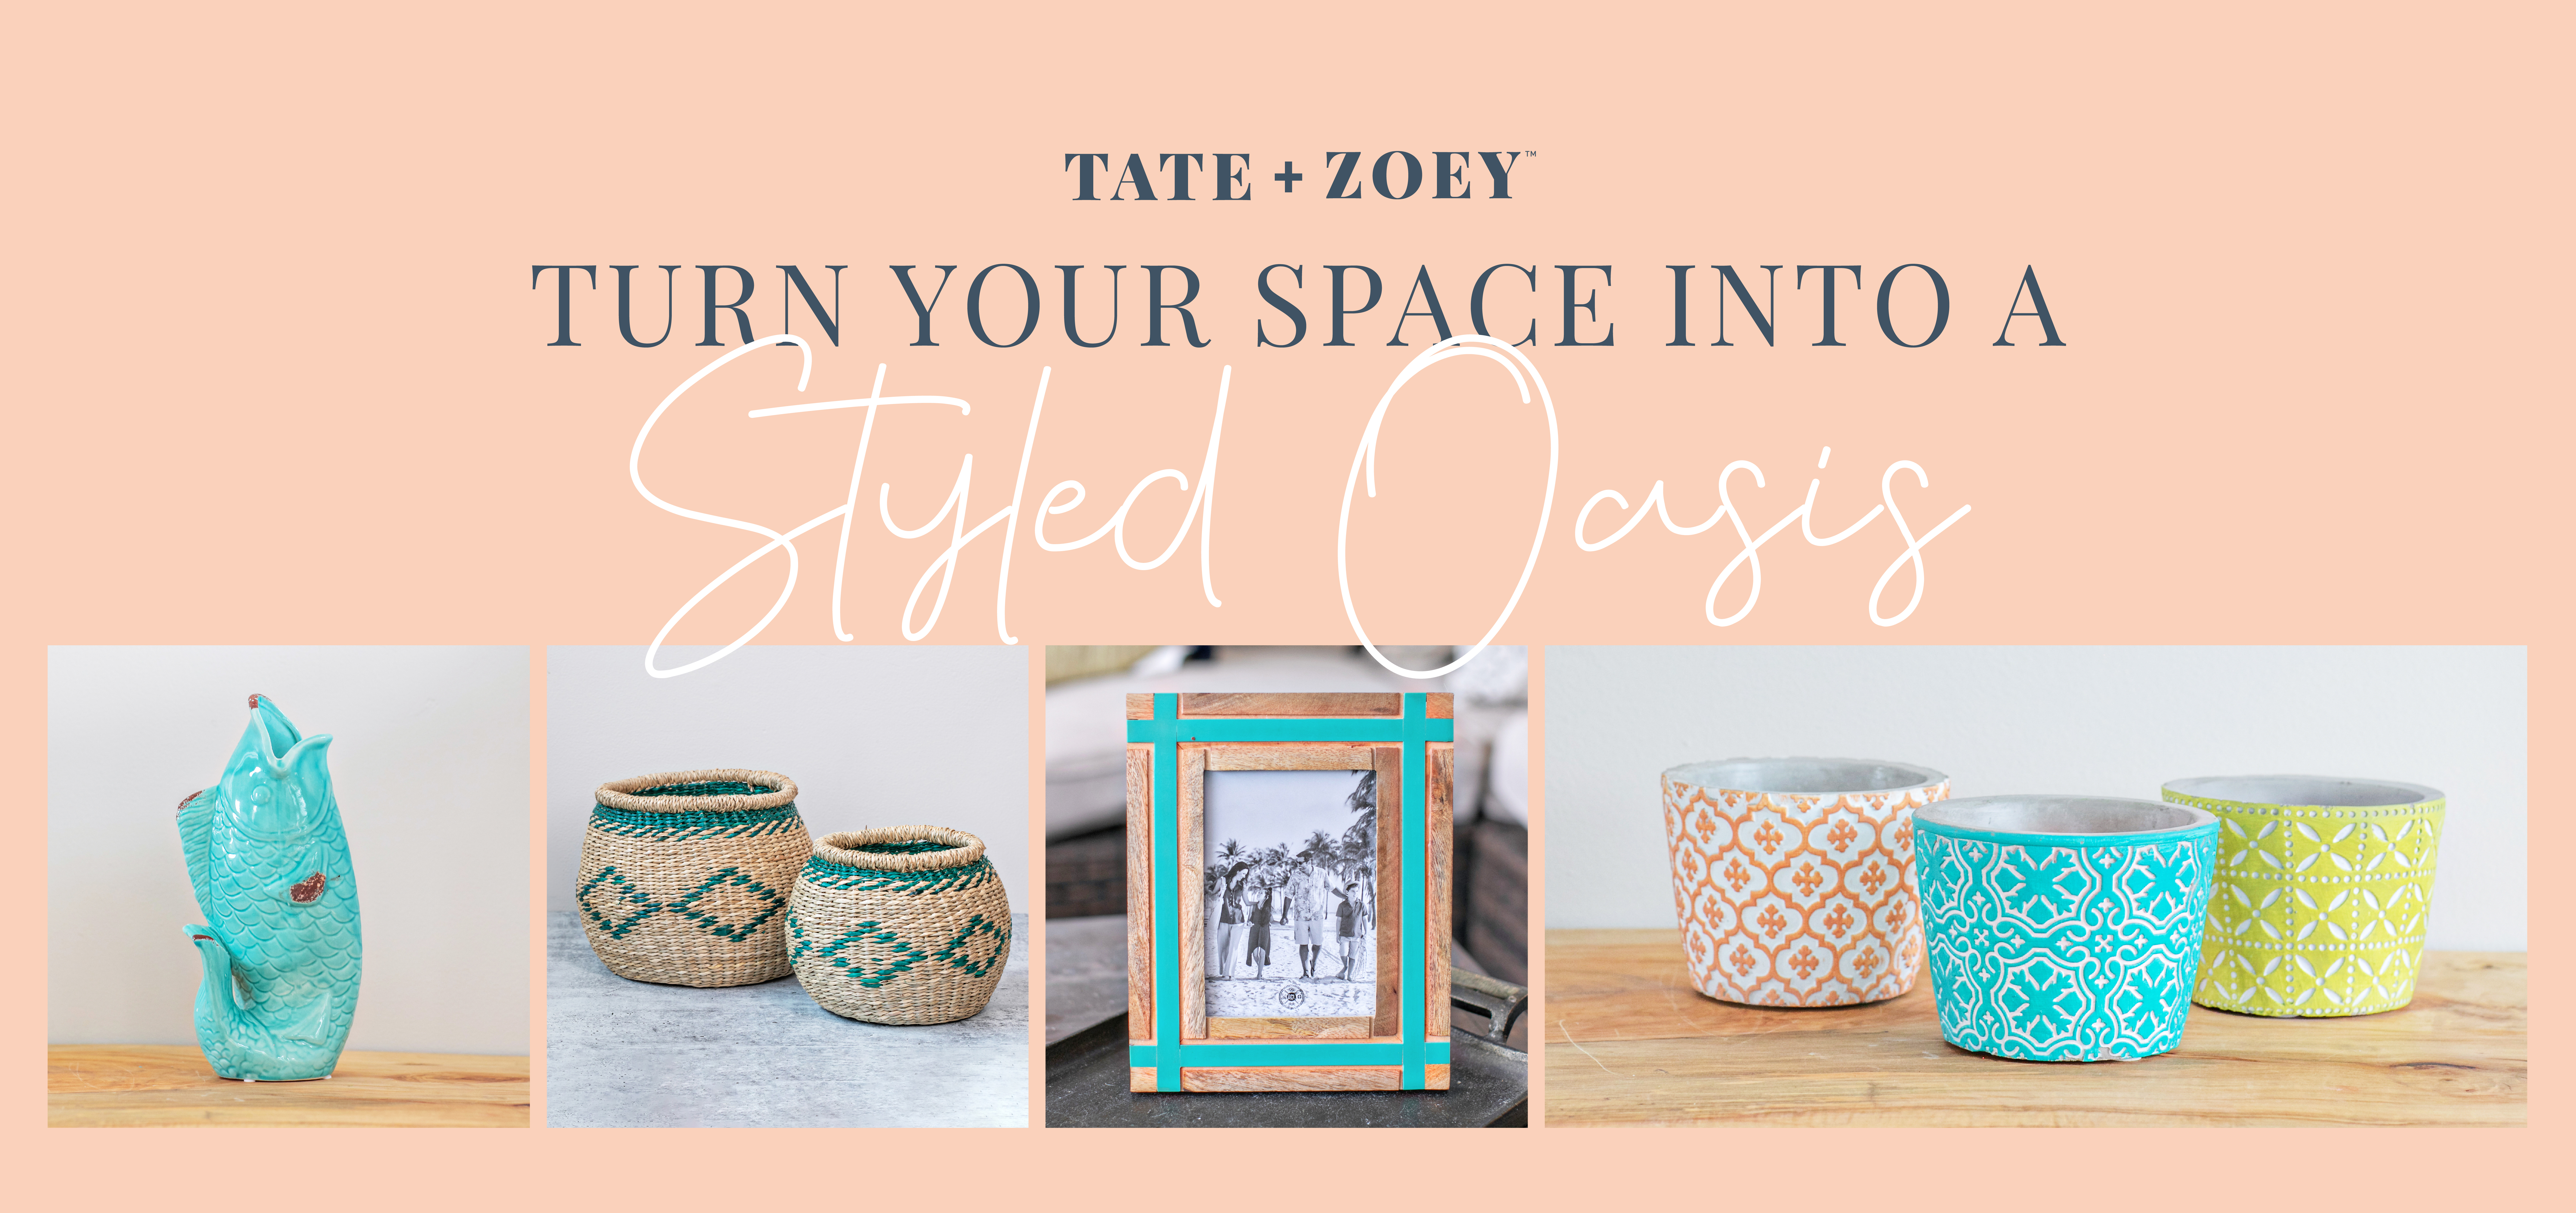 Turn Your Space Into a Styled Oasis